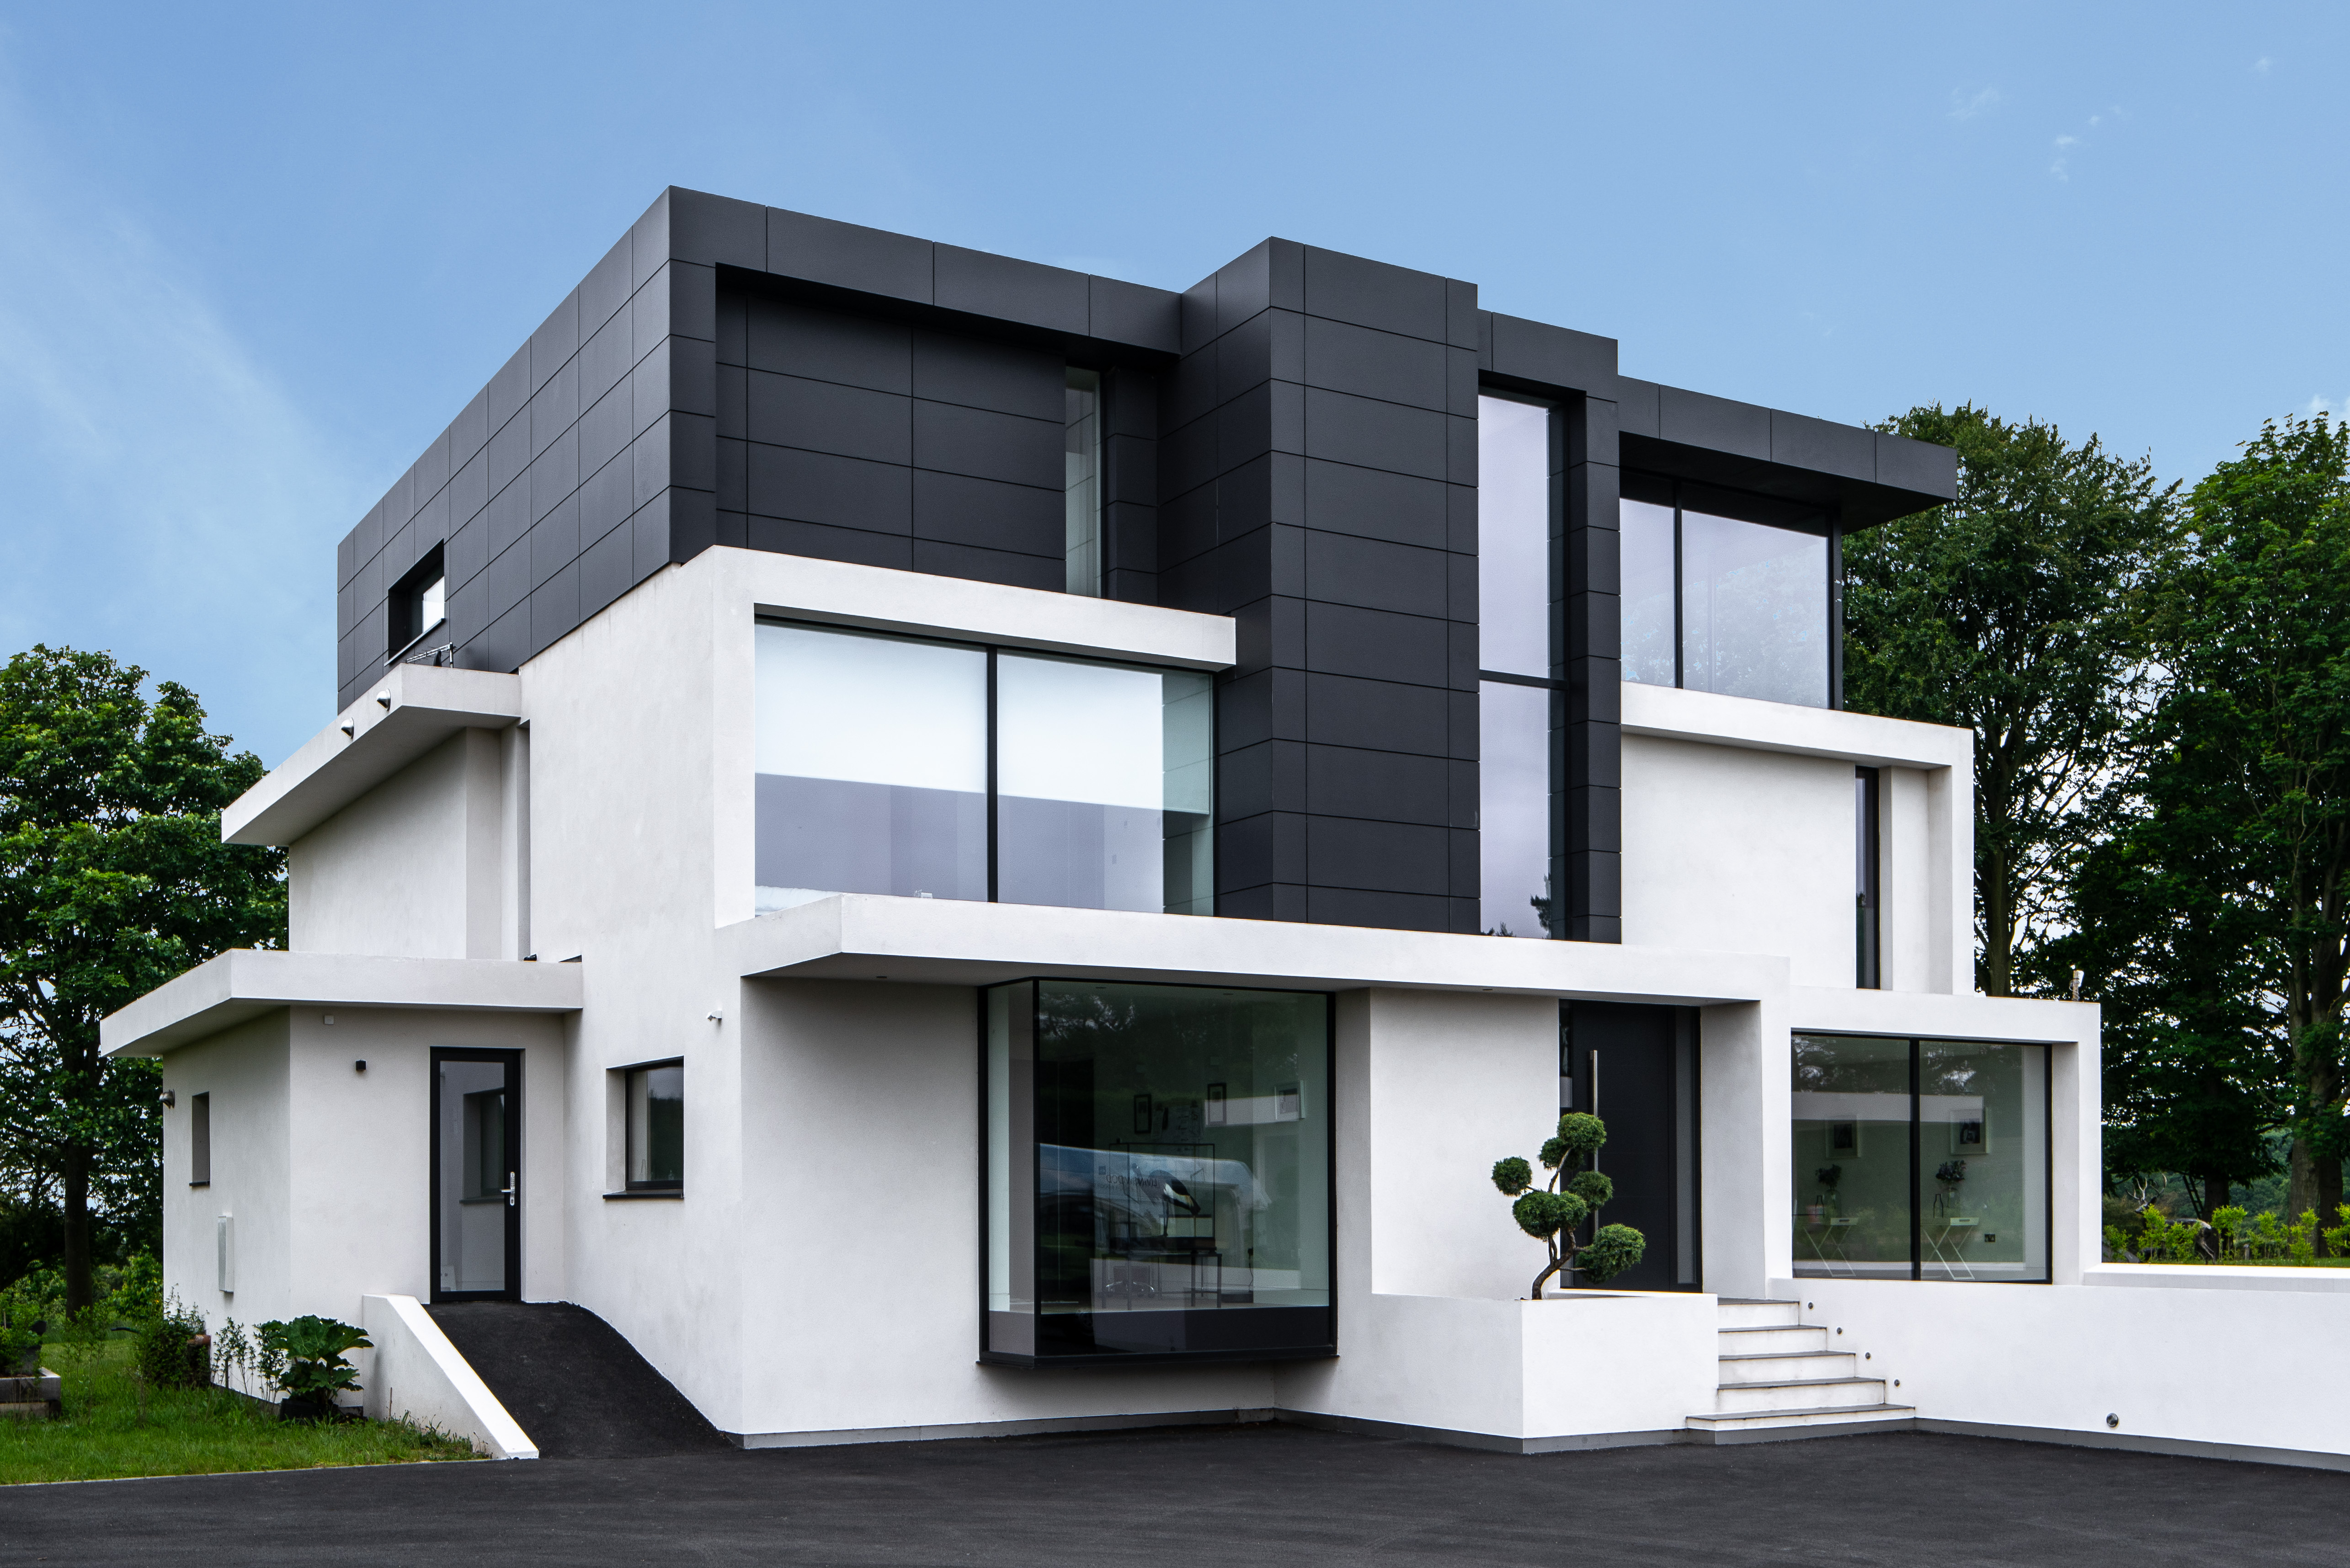 Case Study: Contemporary home by Reynaers - Architecture